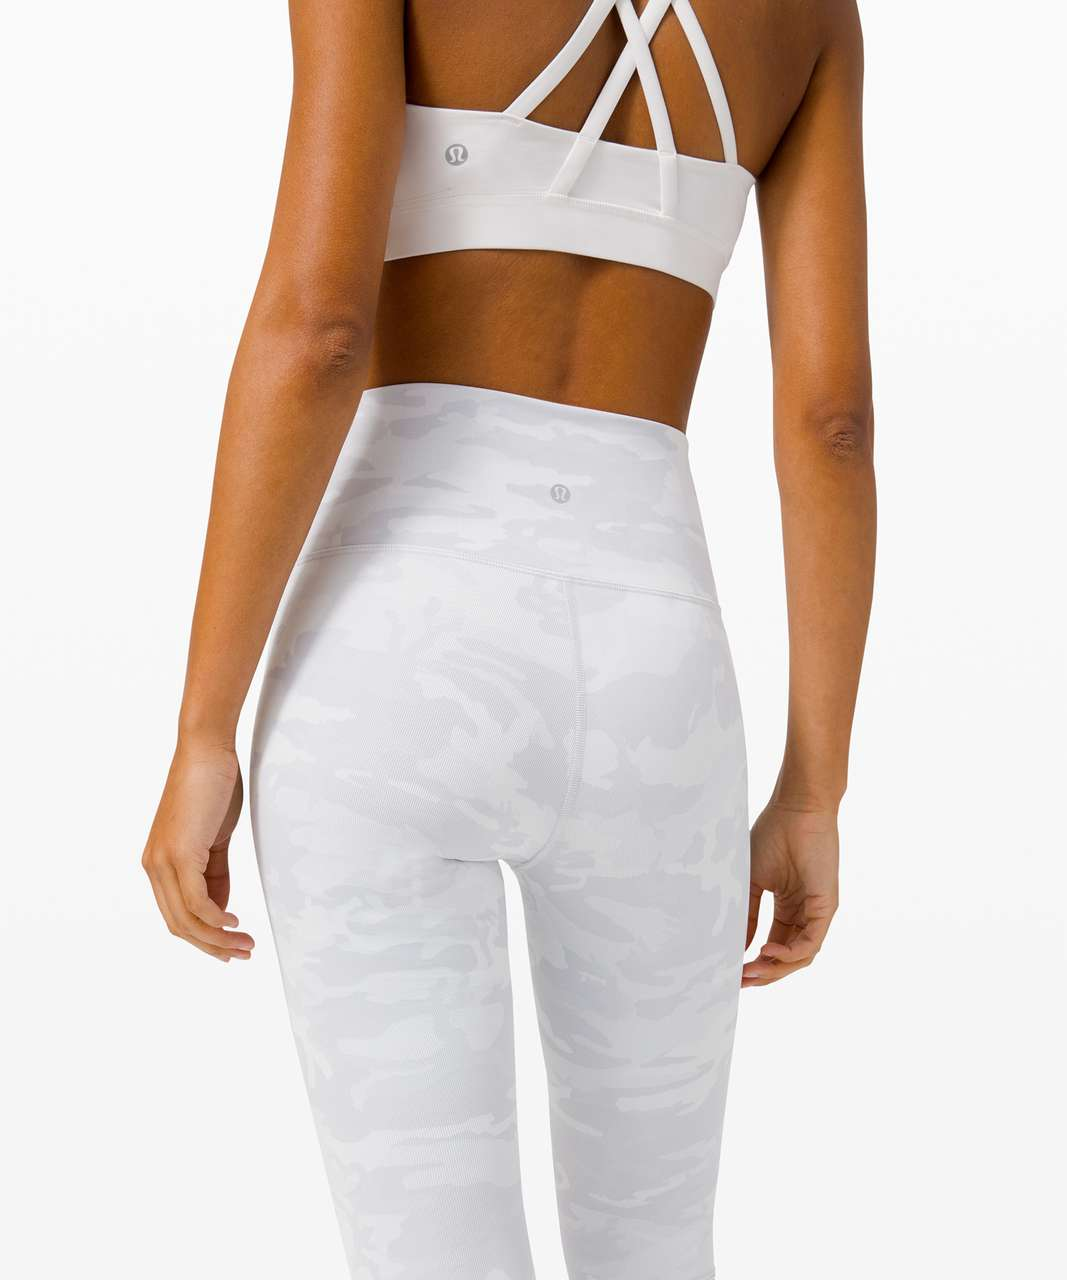 "Lululemon Wunder Under Crop (High-Rise) *Luxtreme 21"" - Incognito Camo Jacquard Alpine White Starlight"